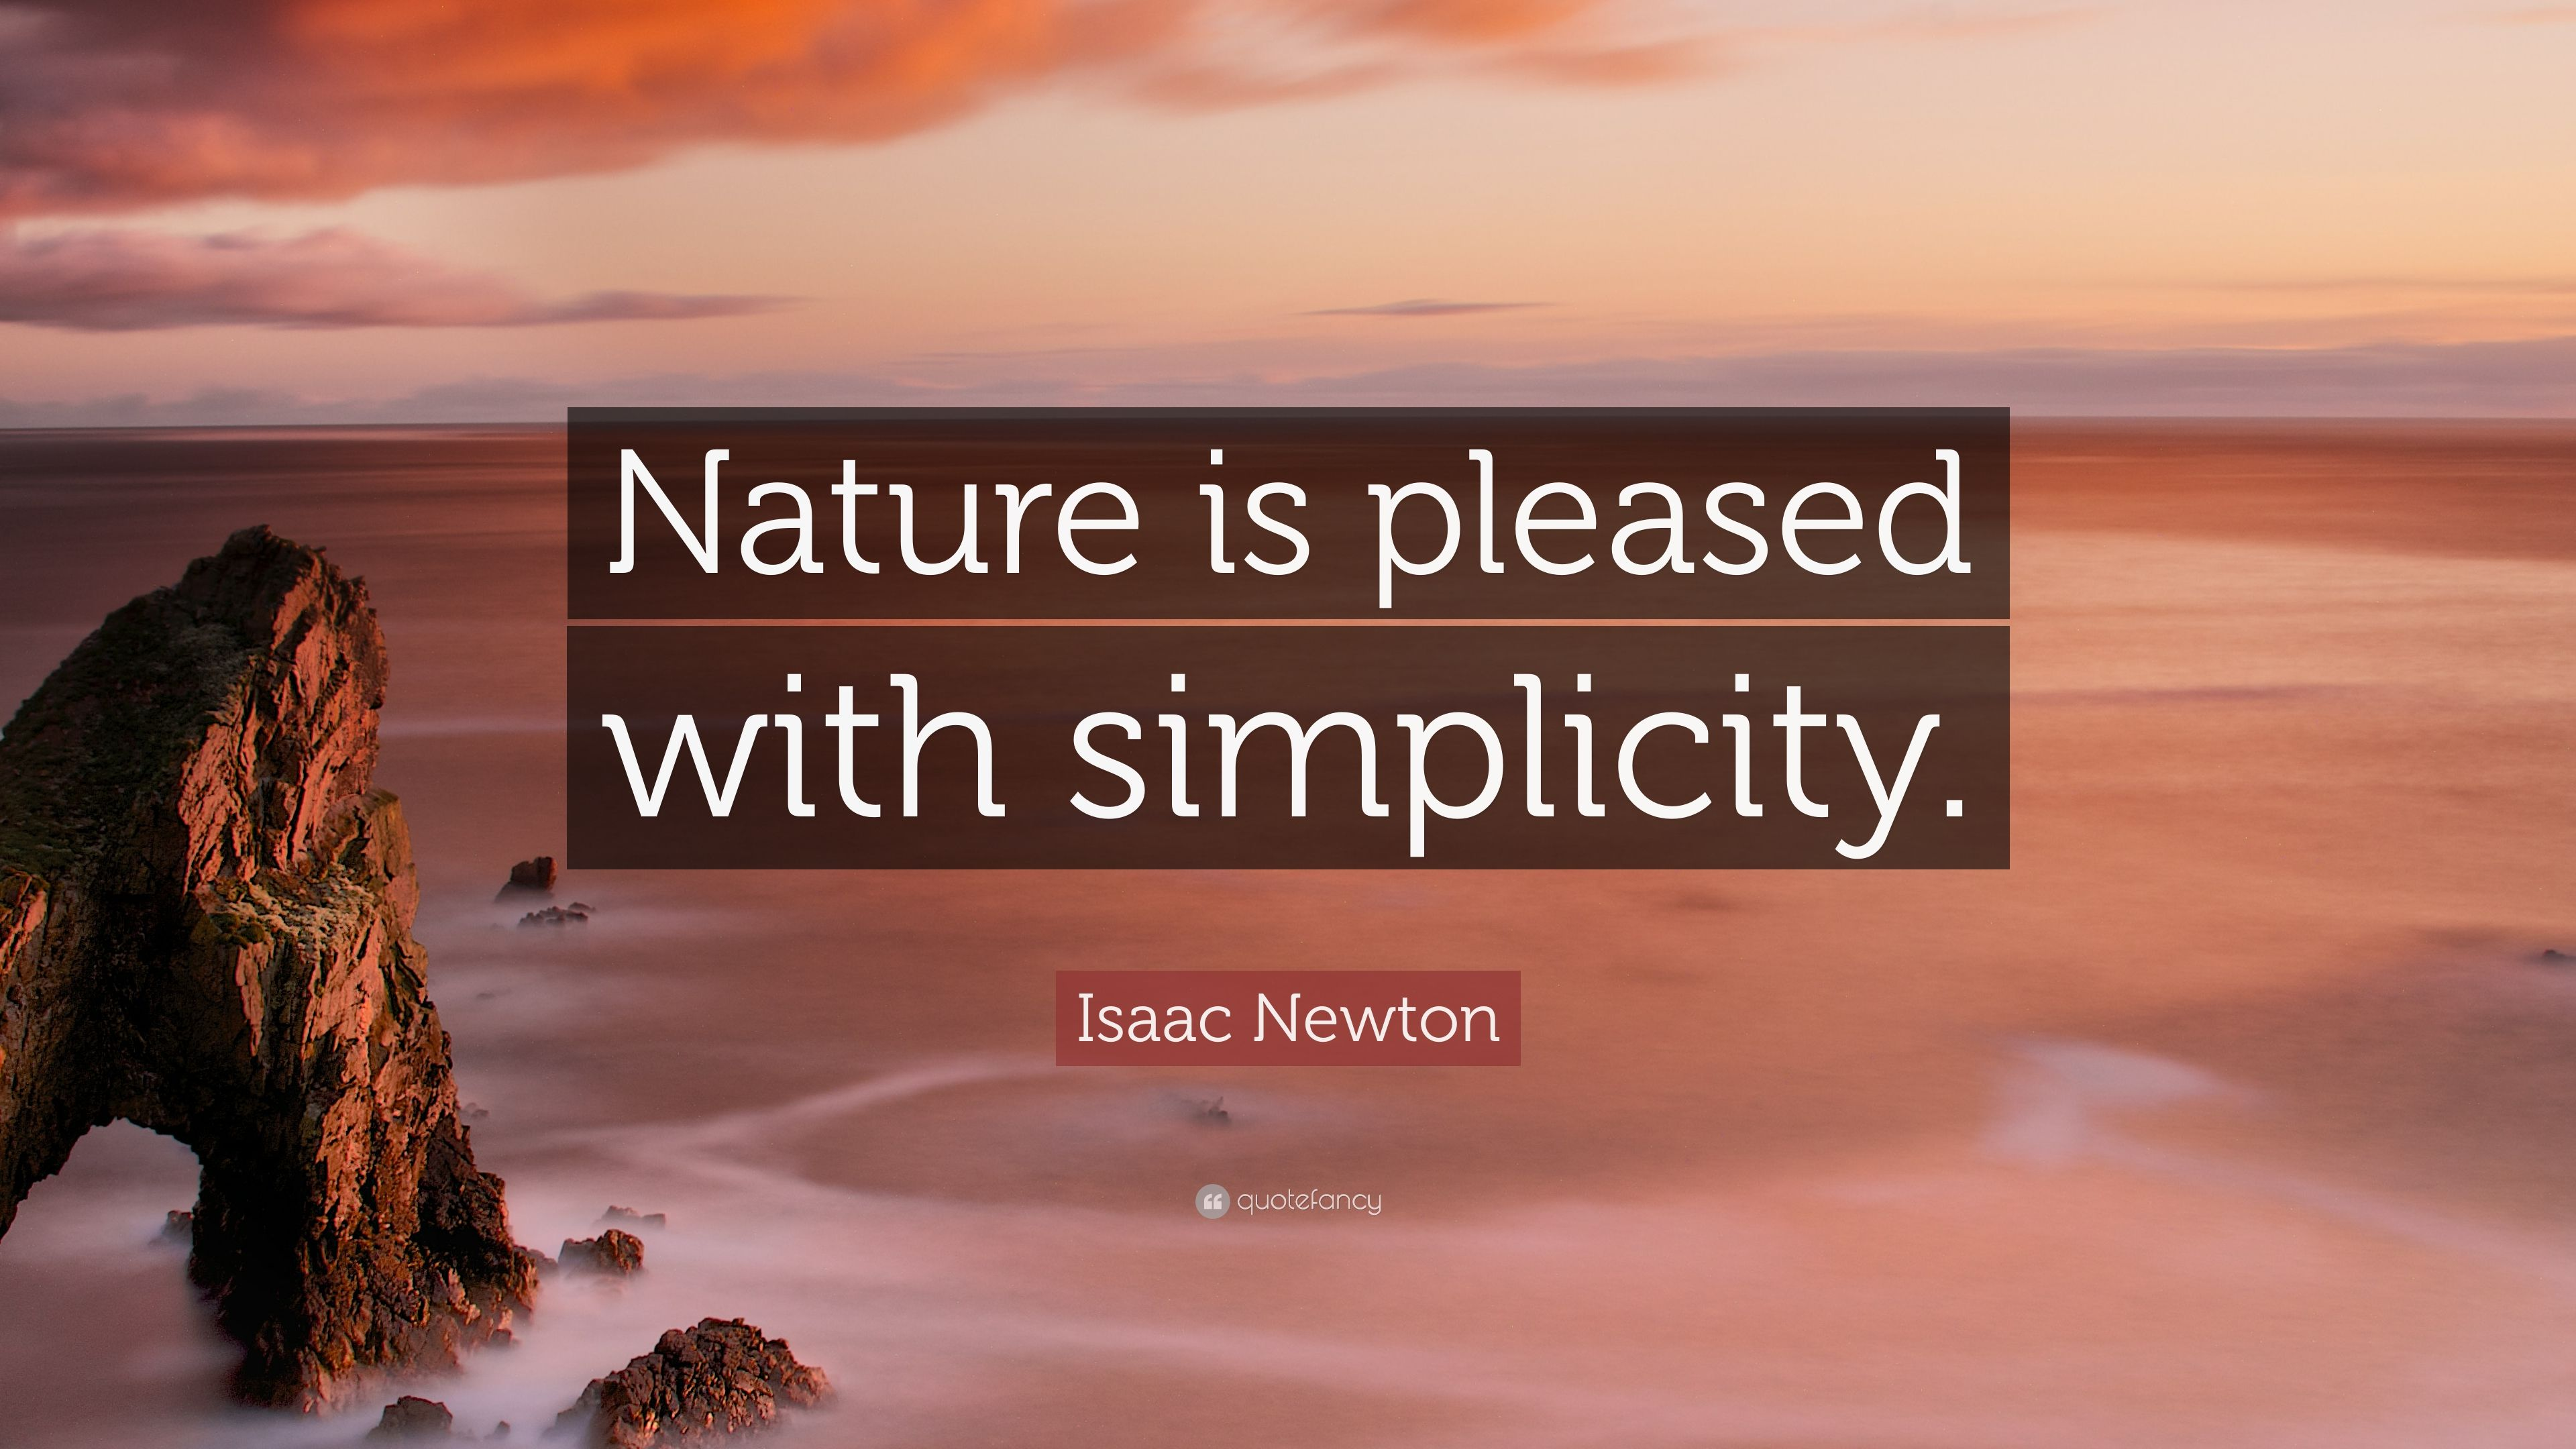 """Isaac Newton Quote """"nature Is Pleased With Simplicity. Bible Quotes Education. Quotes About Love Rejection. Best Friend Quotes Jumping. Music Quotes Pink Floyd. Marriage Quotes Elizabeth Gilbert. Love Quotes Kissing You. Country Quotes About Sunsets. Bible Quotes Losing Loved One"""